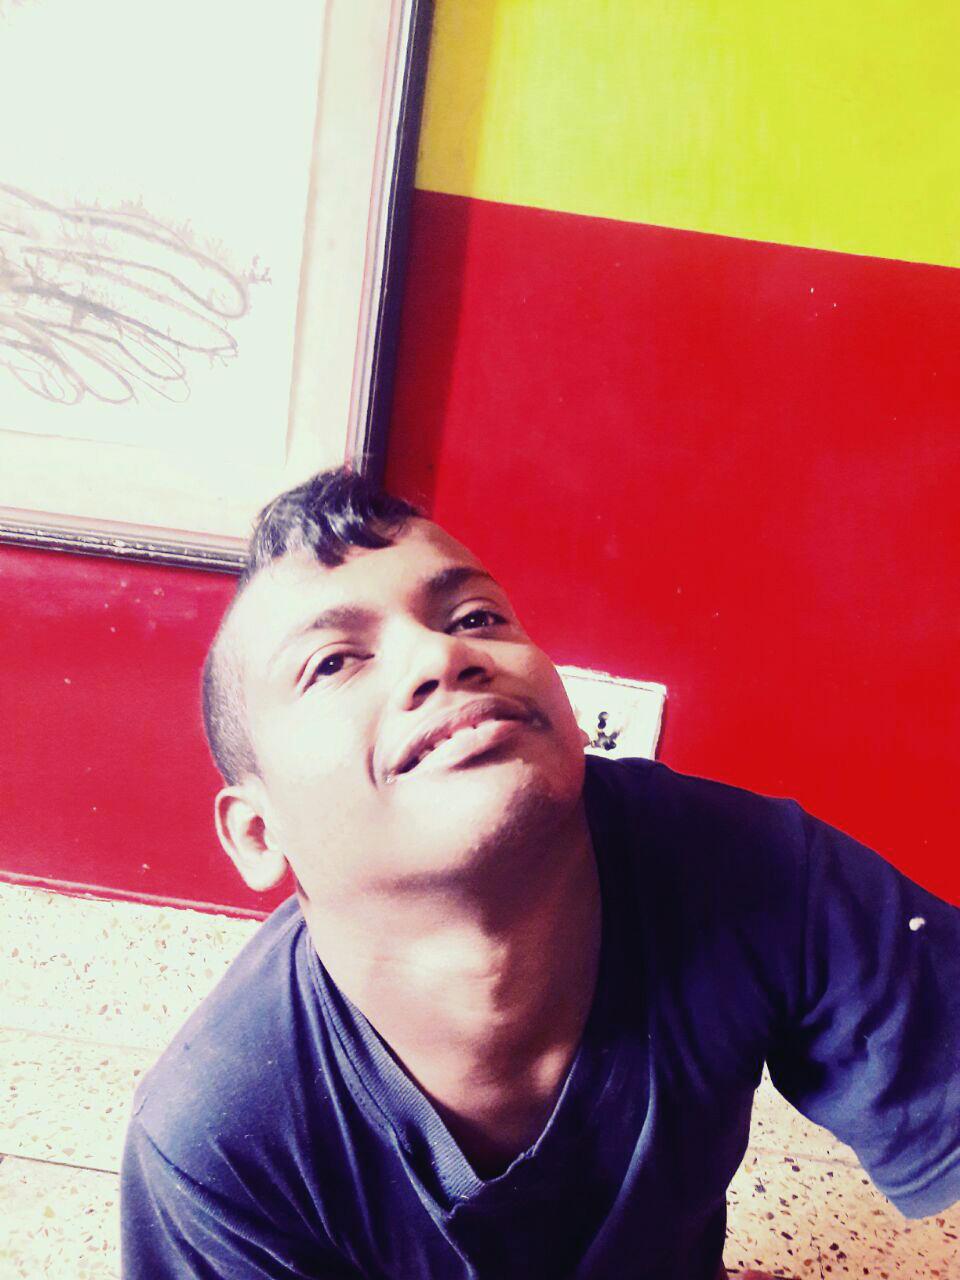 shuktara home for young people with disabilities - 2017 January - Subhash smiling